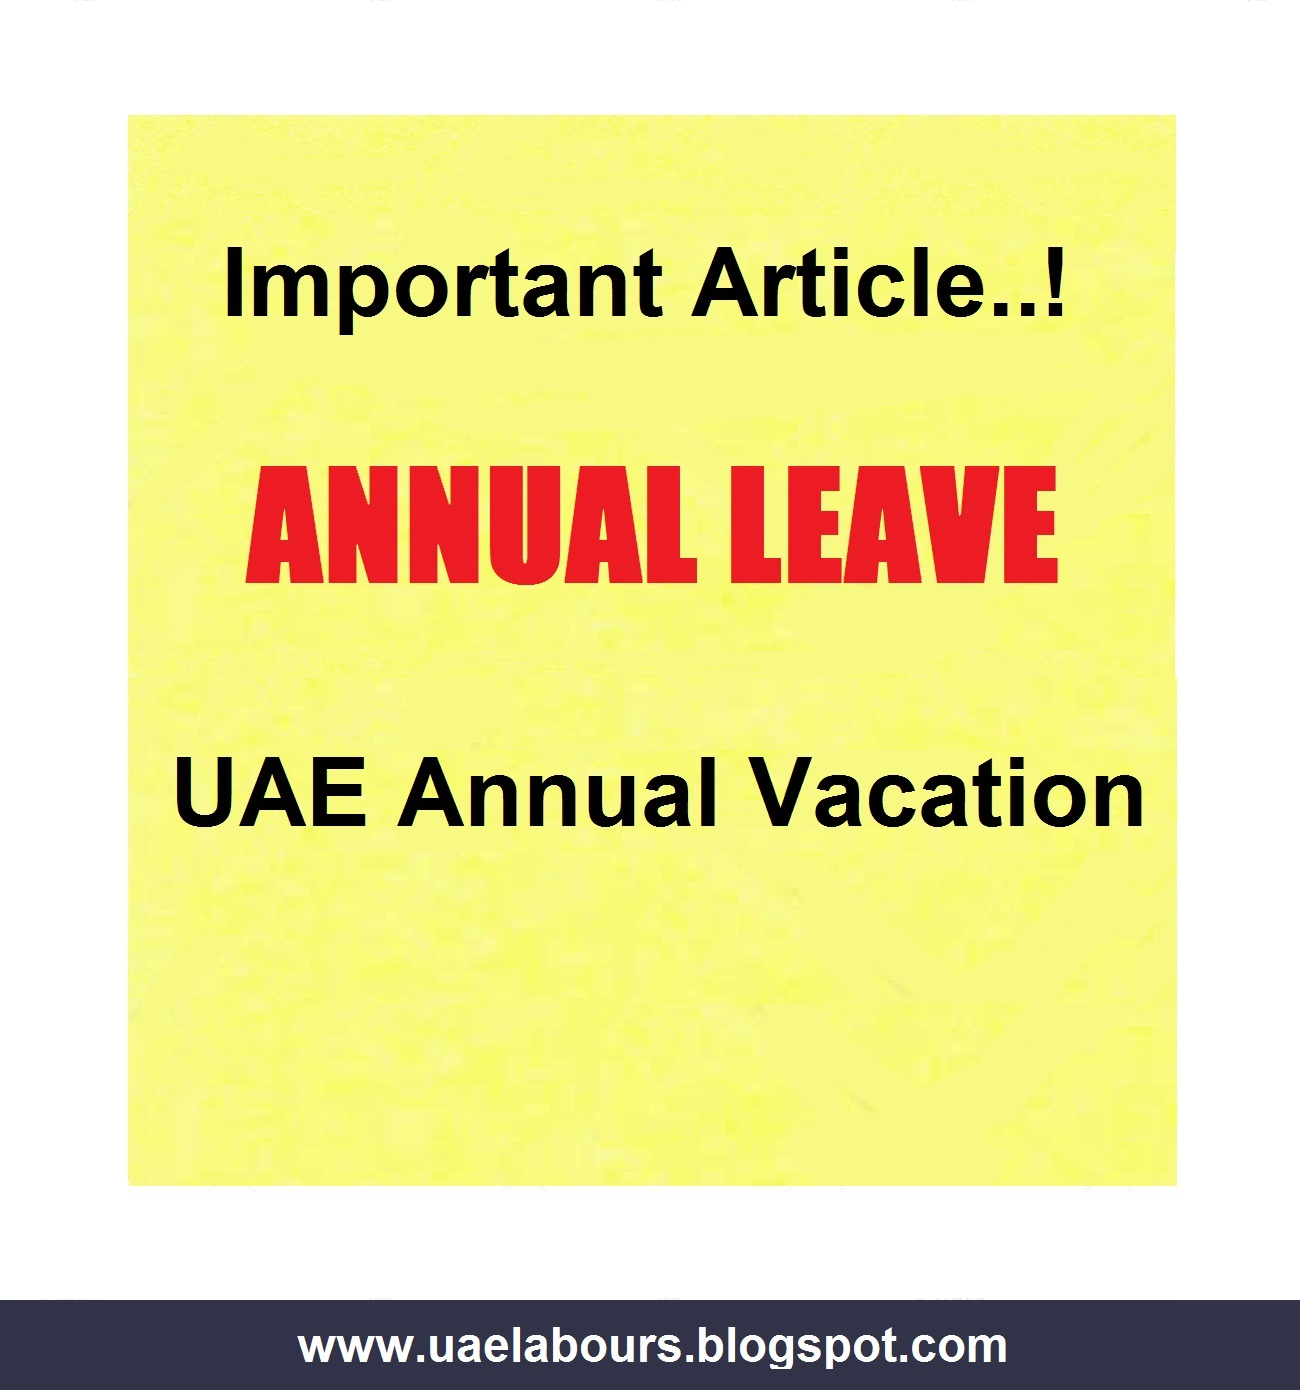 Uae Annual Leave And Vacation Labour Law  Uae Labours